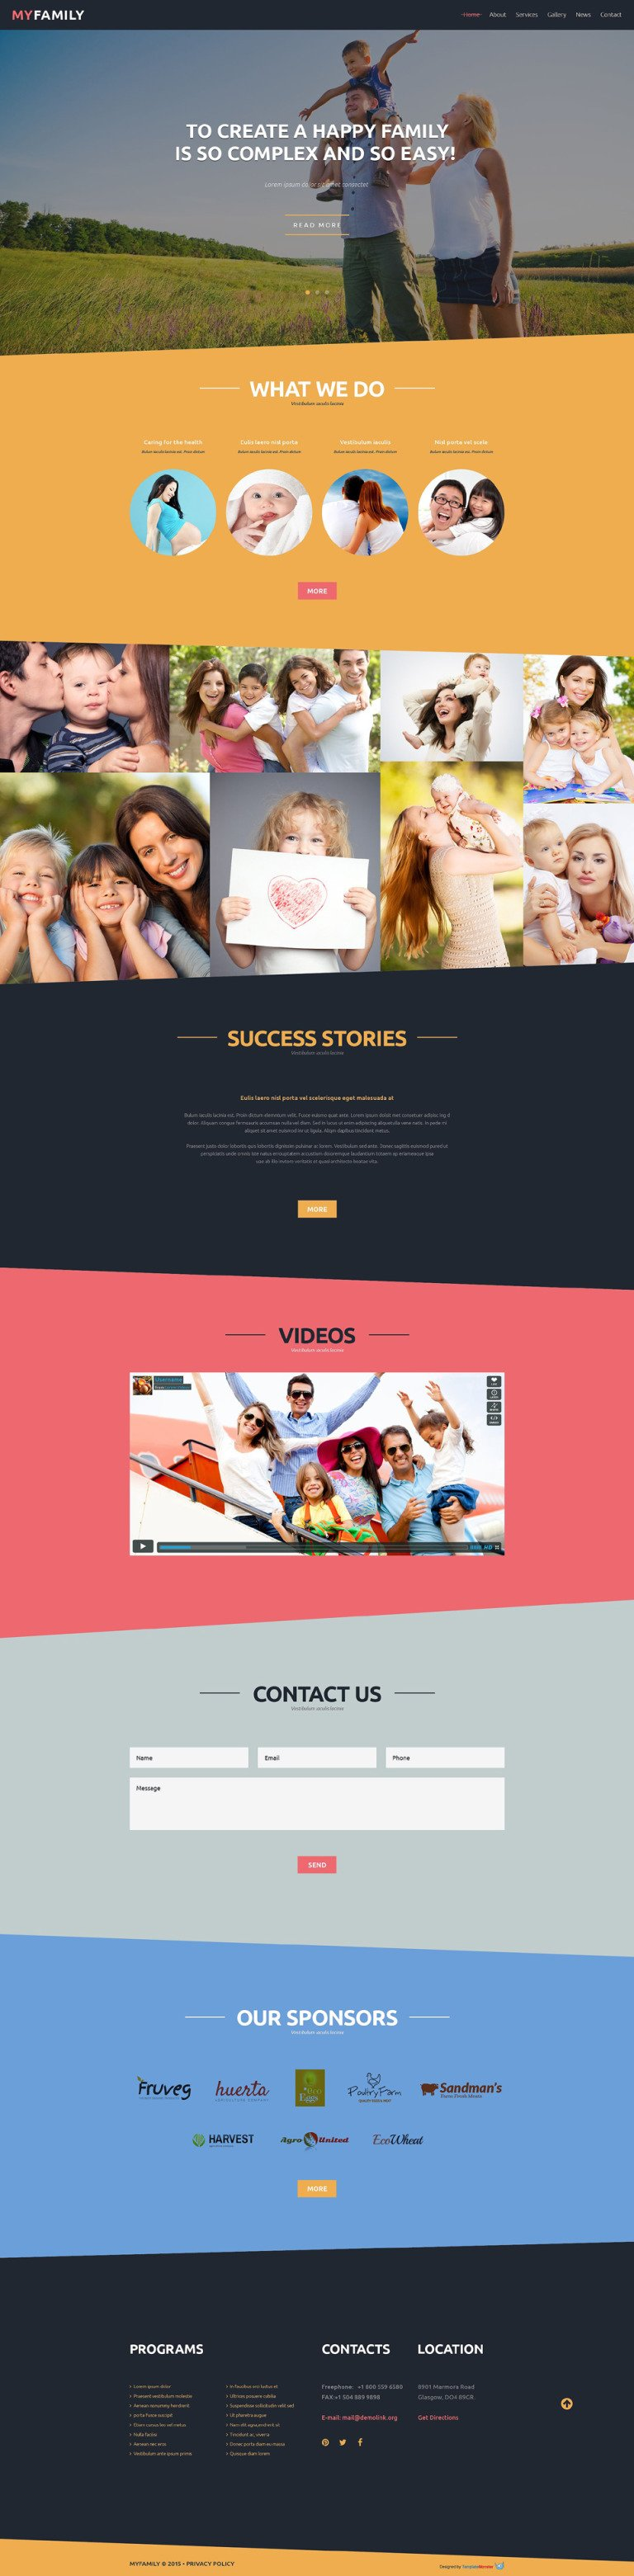 Family Center Free Joomla Template Joomla Template New Screenshots BIG